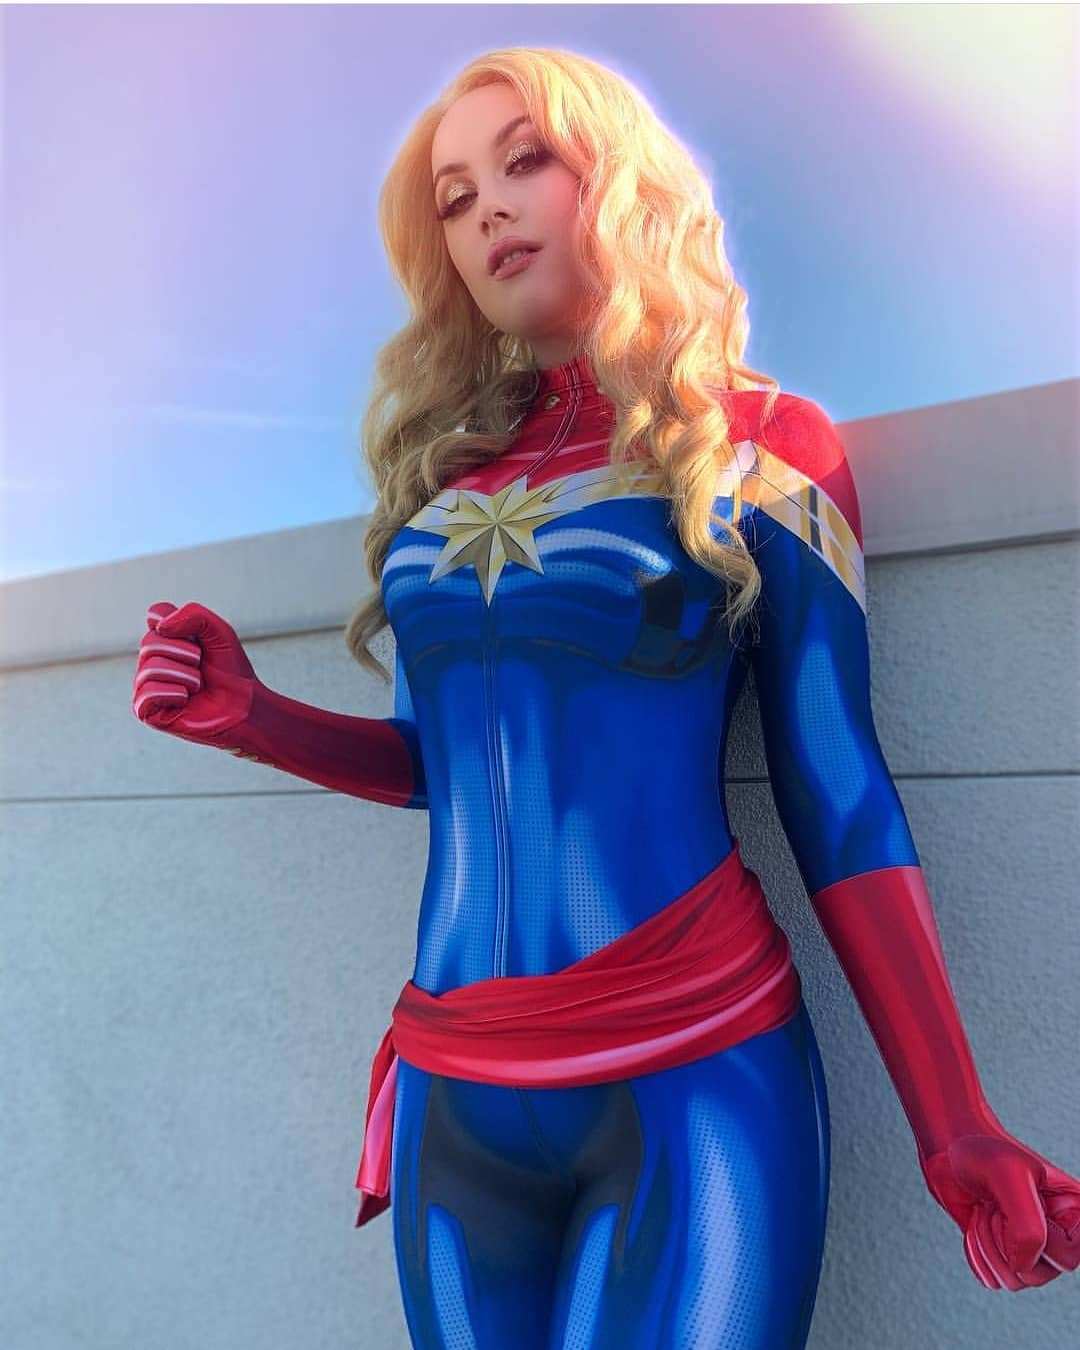 Free Comic Book Day Etiquette: Captain Marvel Cosplay Free Comic Book Day 2019 12 By